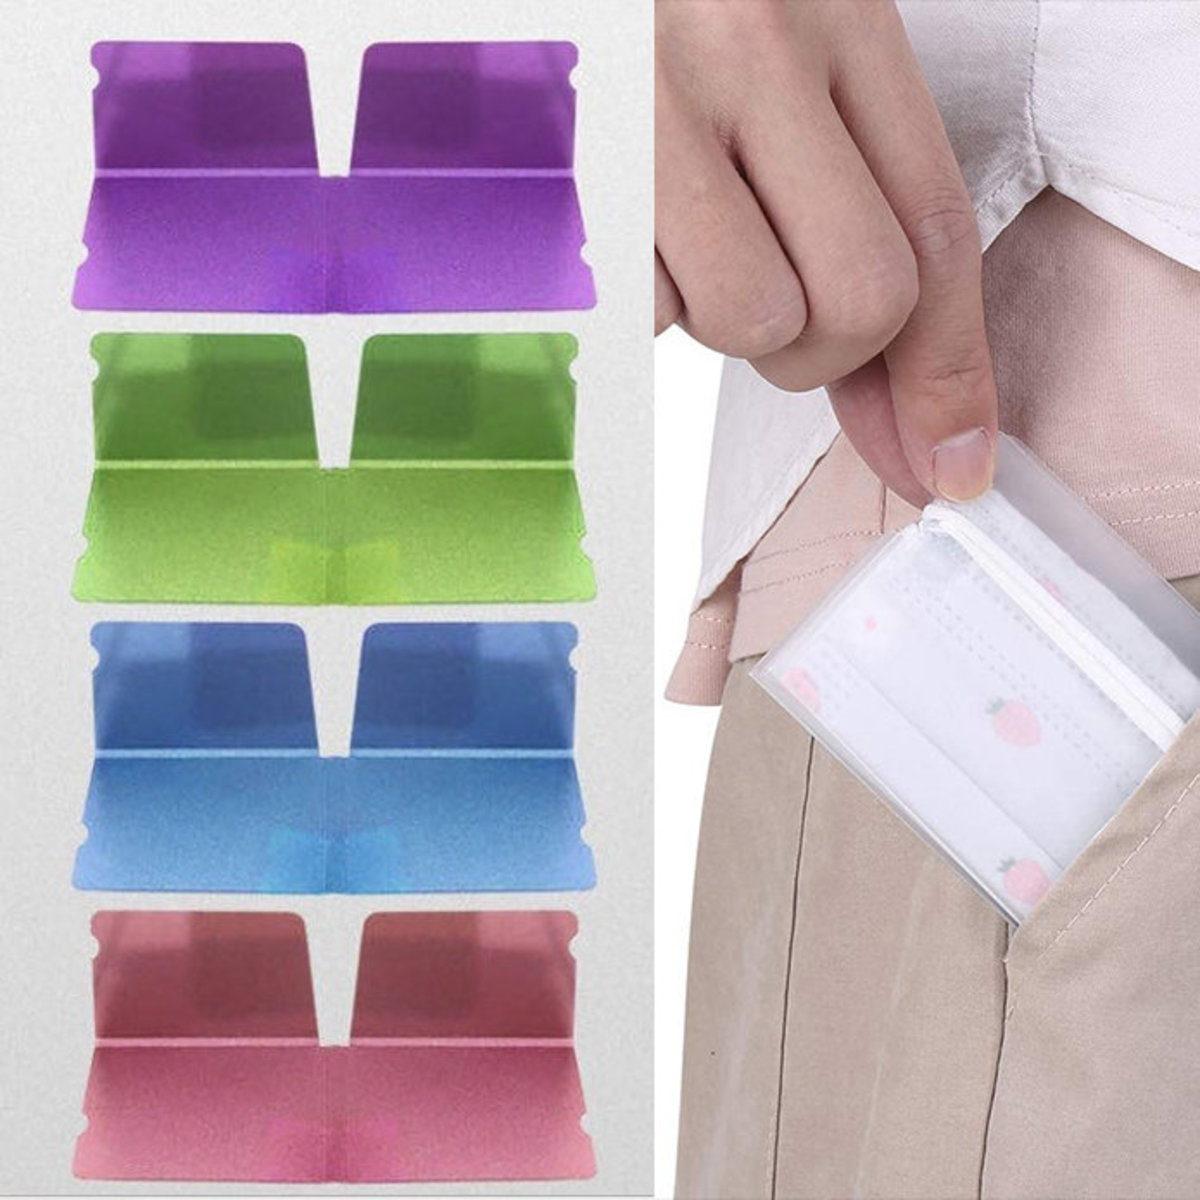 Mask organiser file case, multi color 5 pcs (This item NOT include mask)